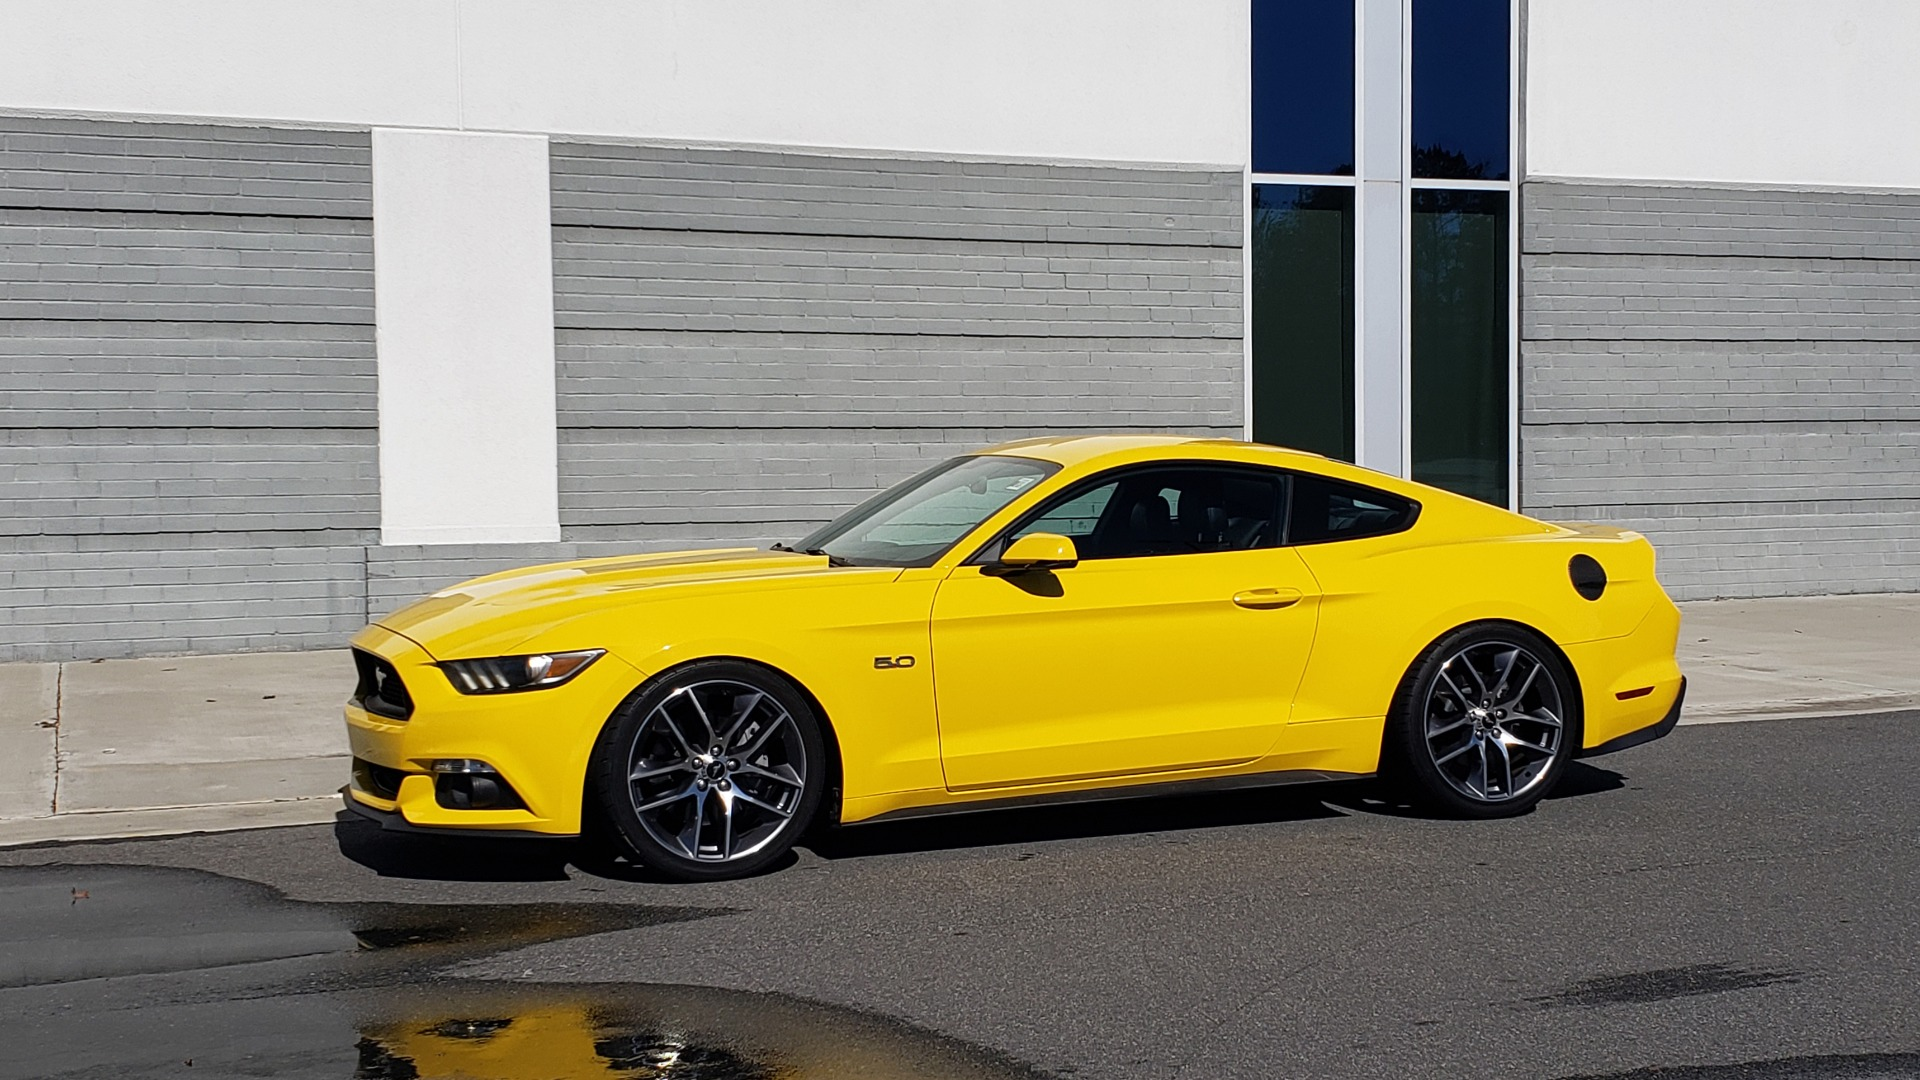 Used 2015 Ford MUSTANG GT 5.0L COUPE PREMIUM / 6-SPD MAN / SHAKER AUDIO / NAV for sale Sold at Formula Imports in Charlotte NC 28227 3